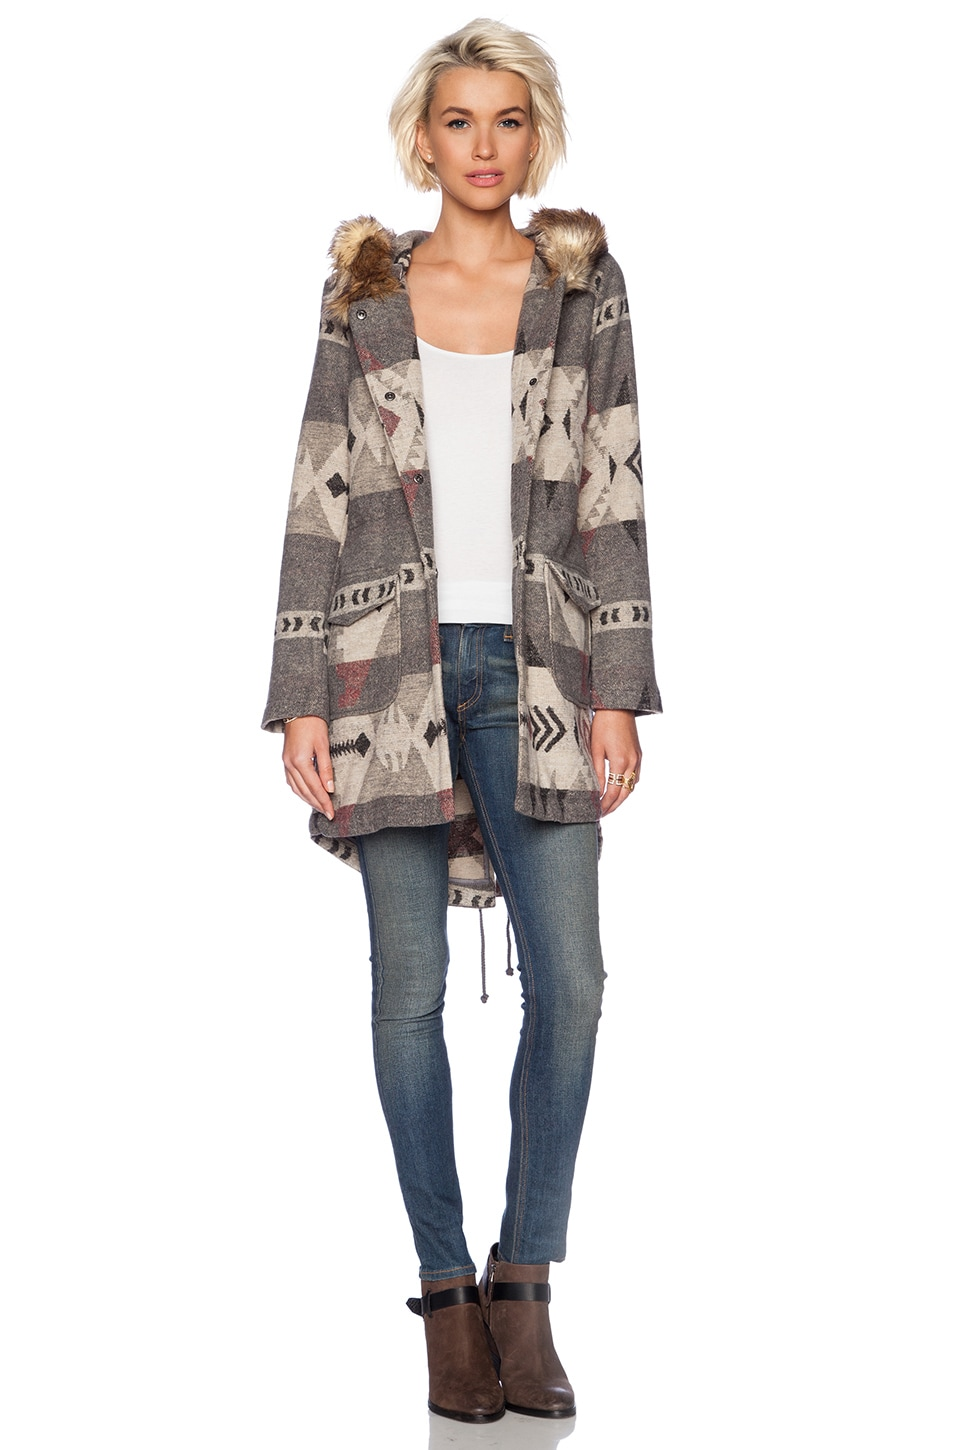 BB Dakota Negeen Patterned Coat with Fuax Fur Trim in Grey